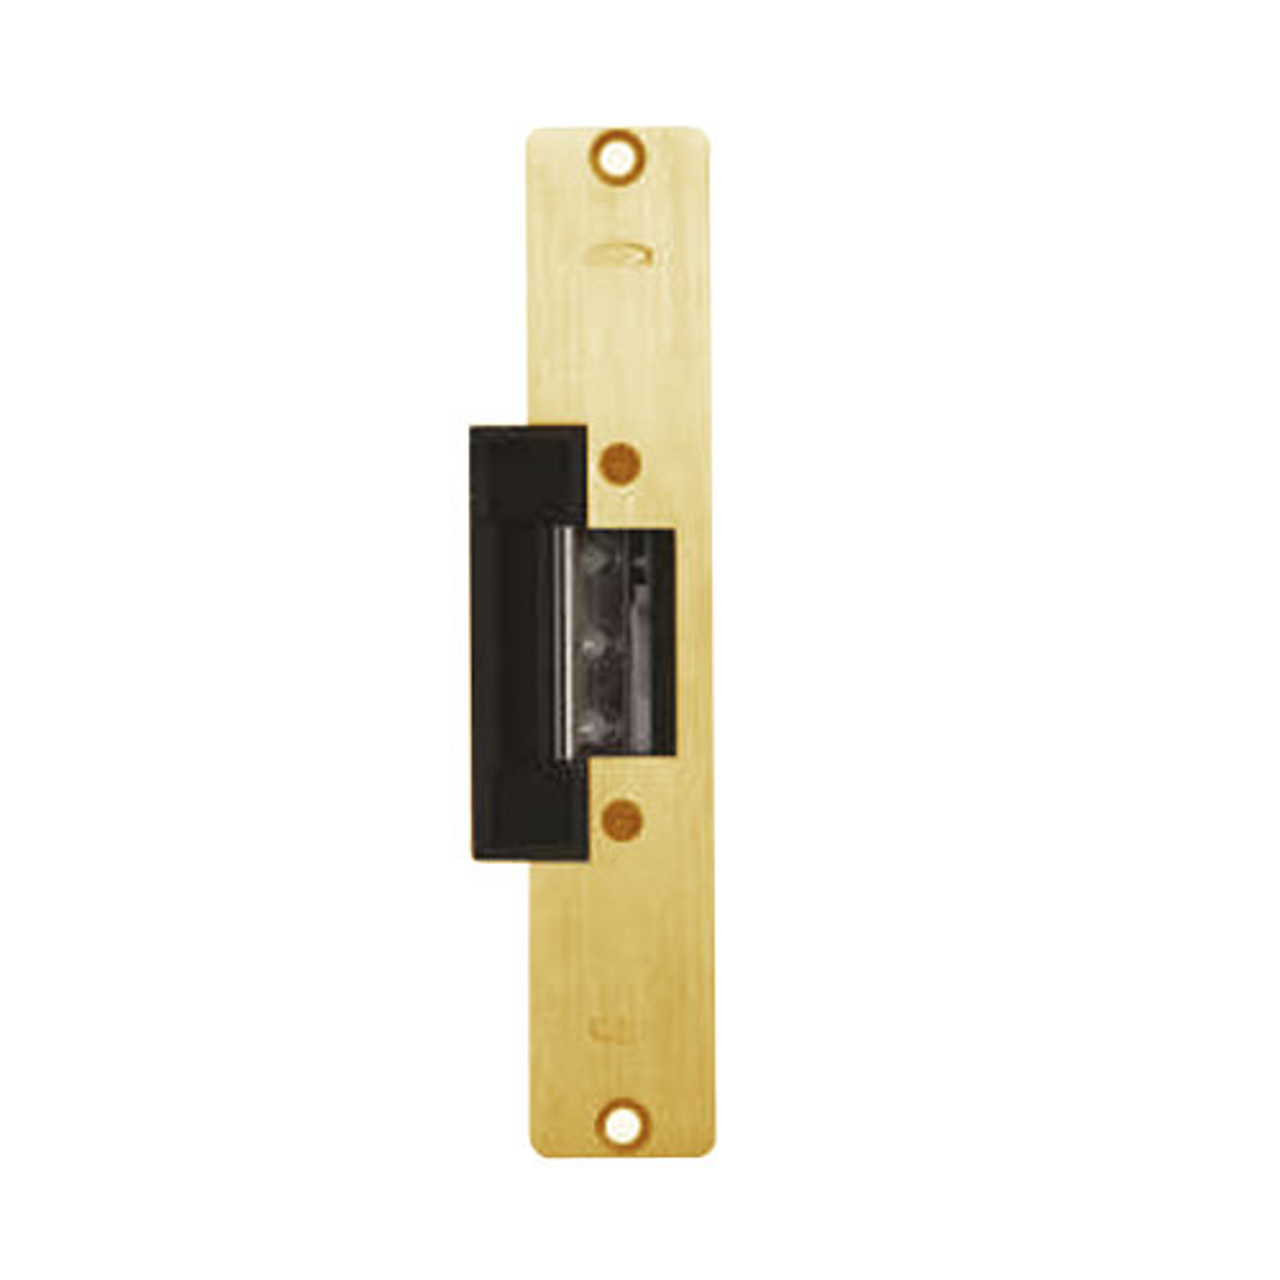 2678-US10-16-24AC/DC Trine Light Commercial Adjustable 2000 Series Electric Strikes in Satin Bronze Finish